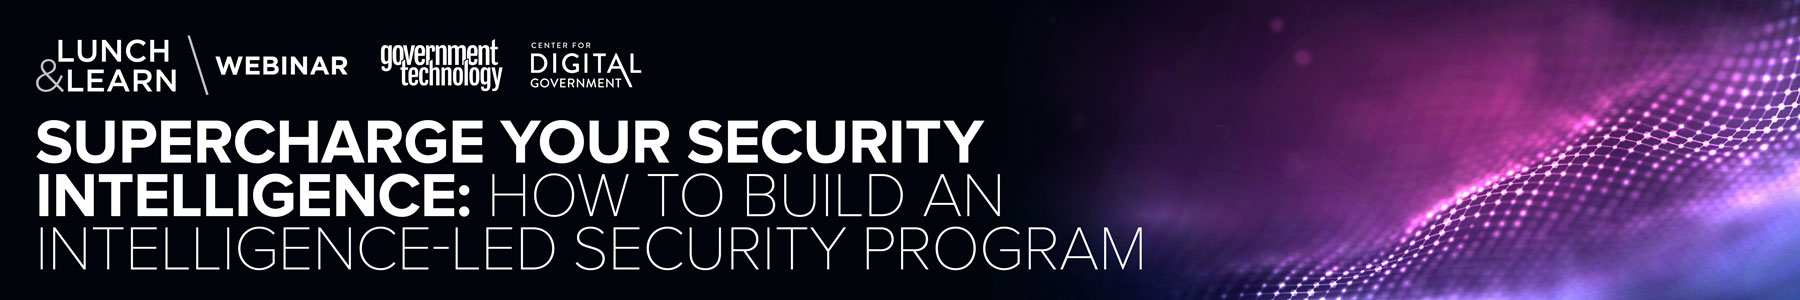 Supercharge Your Security Intelligence: How to Build an Intelligence-Led Security Program